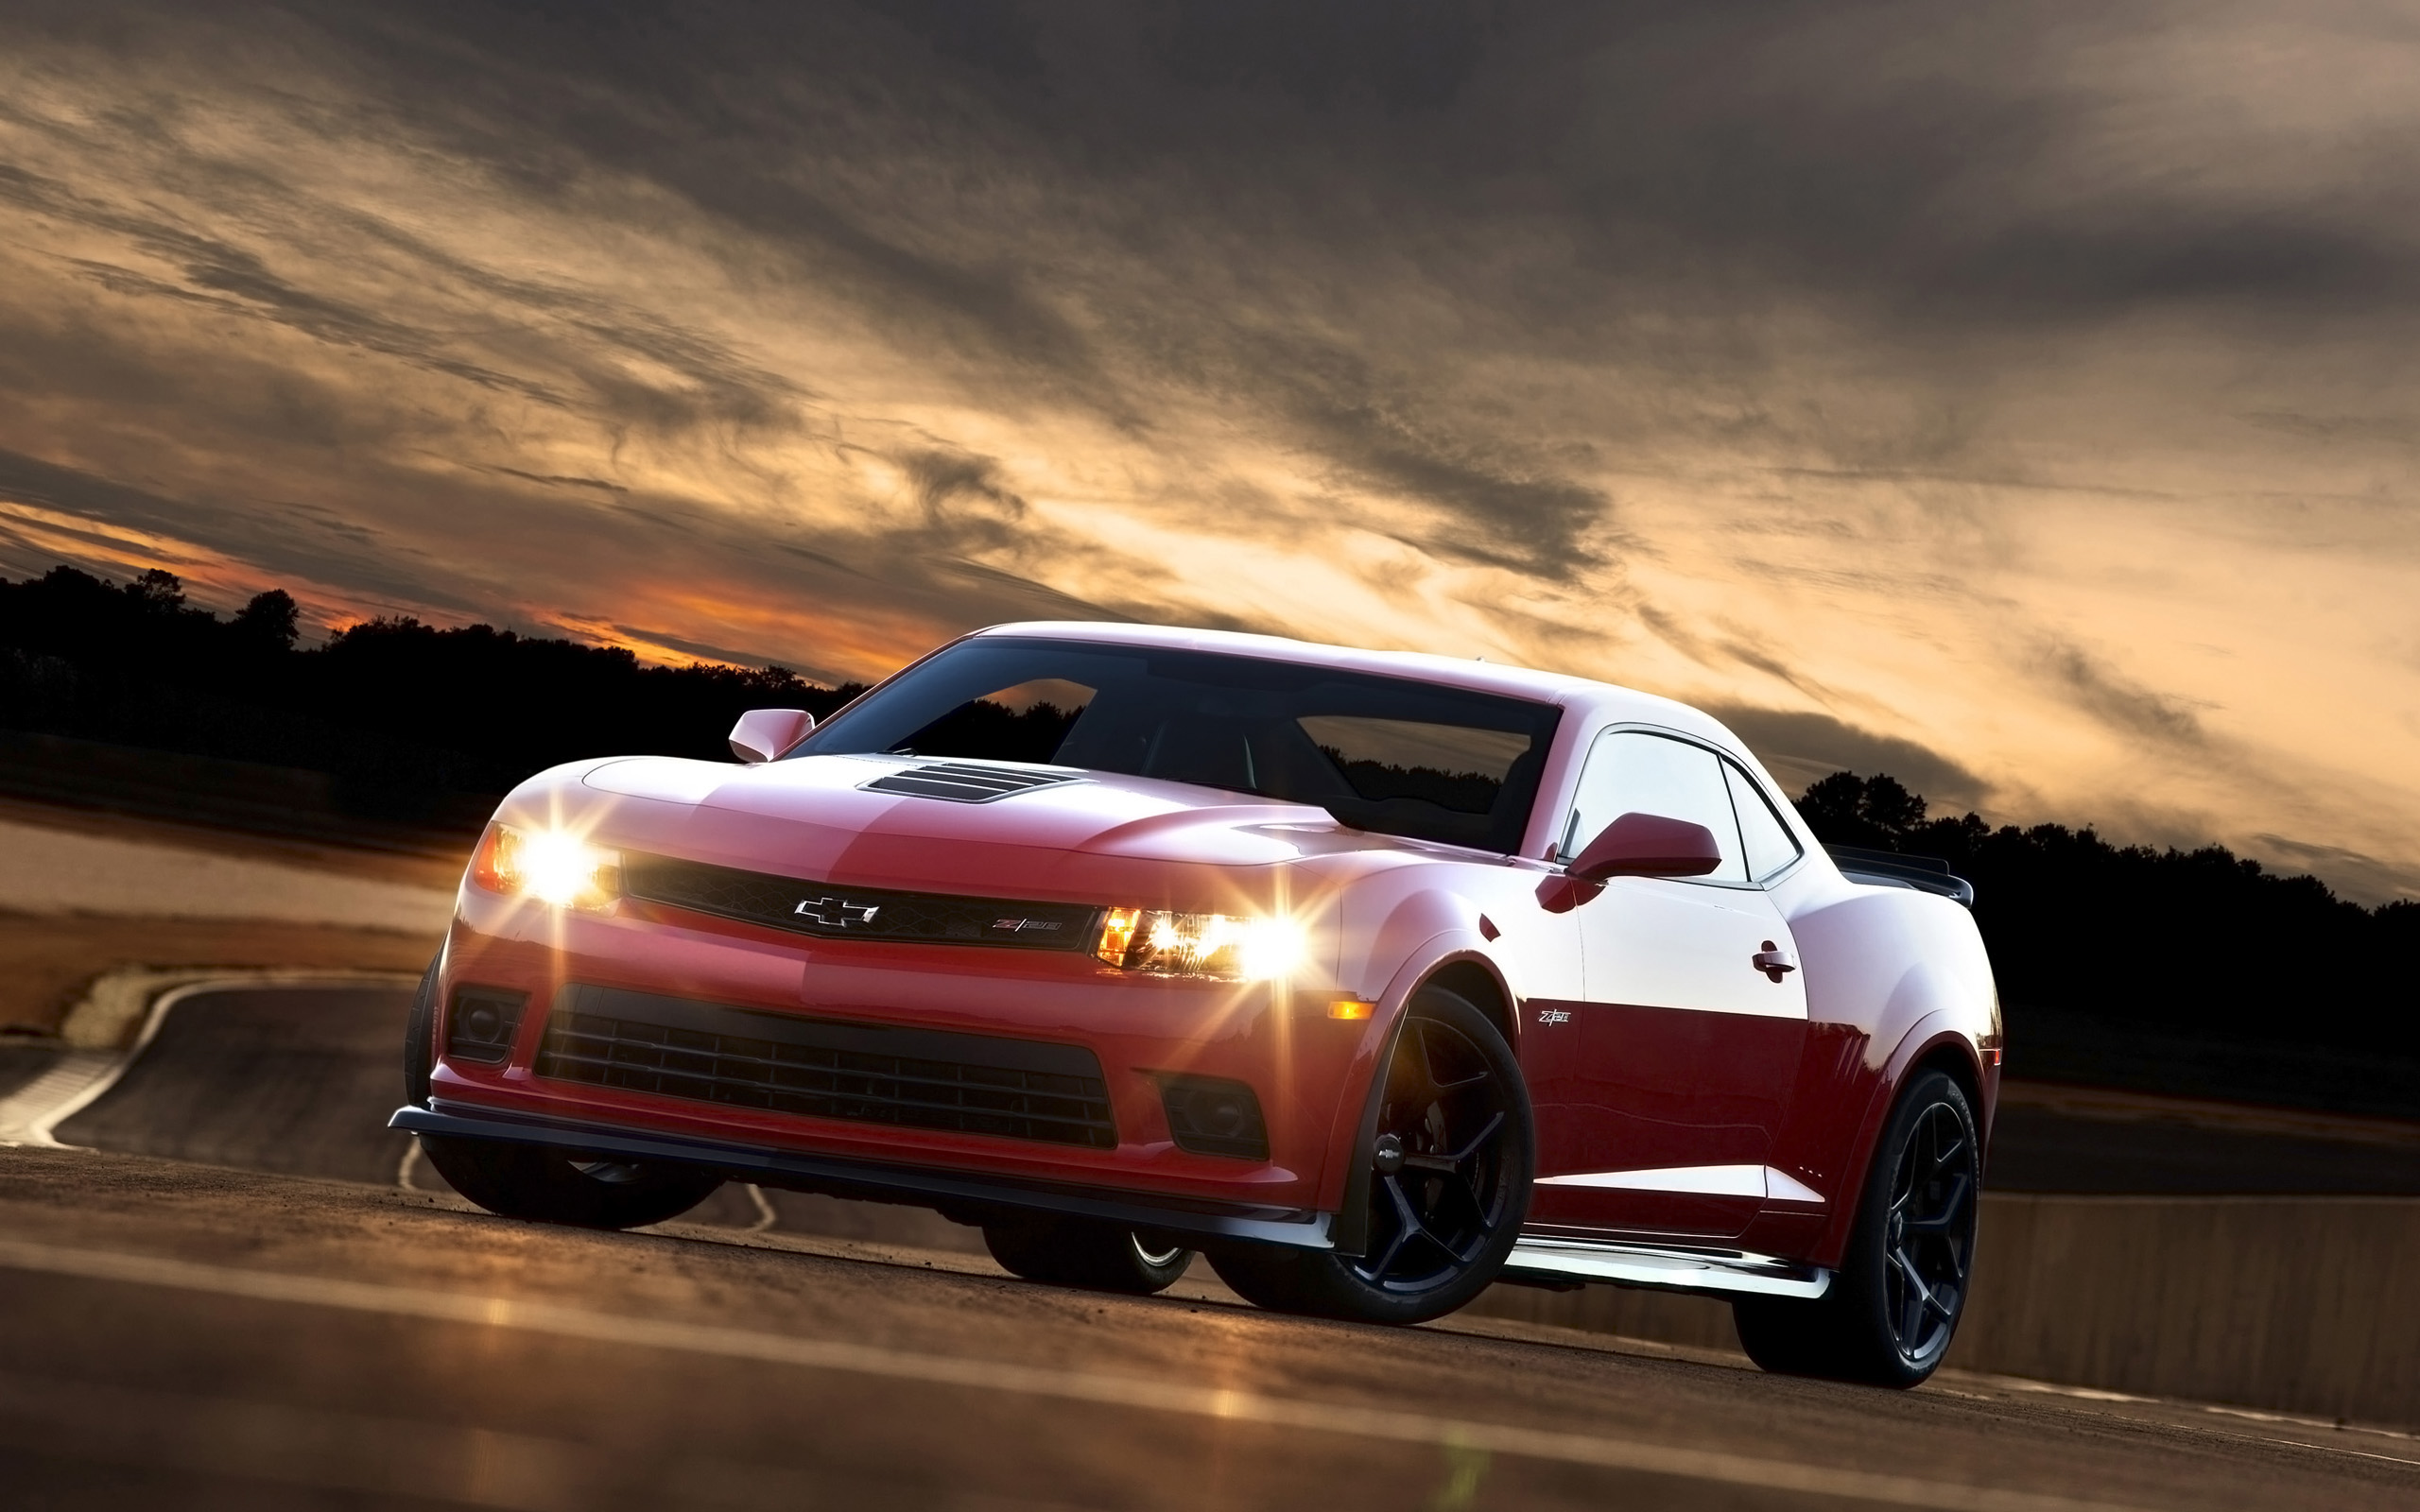 Chevy camaro hd wallpapers 2015 Chevy Camaro Z28 2560x1600